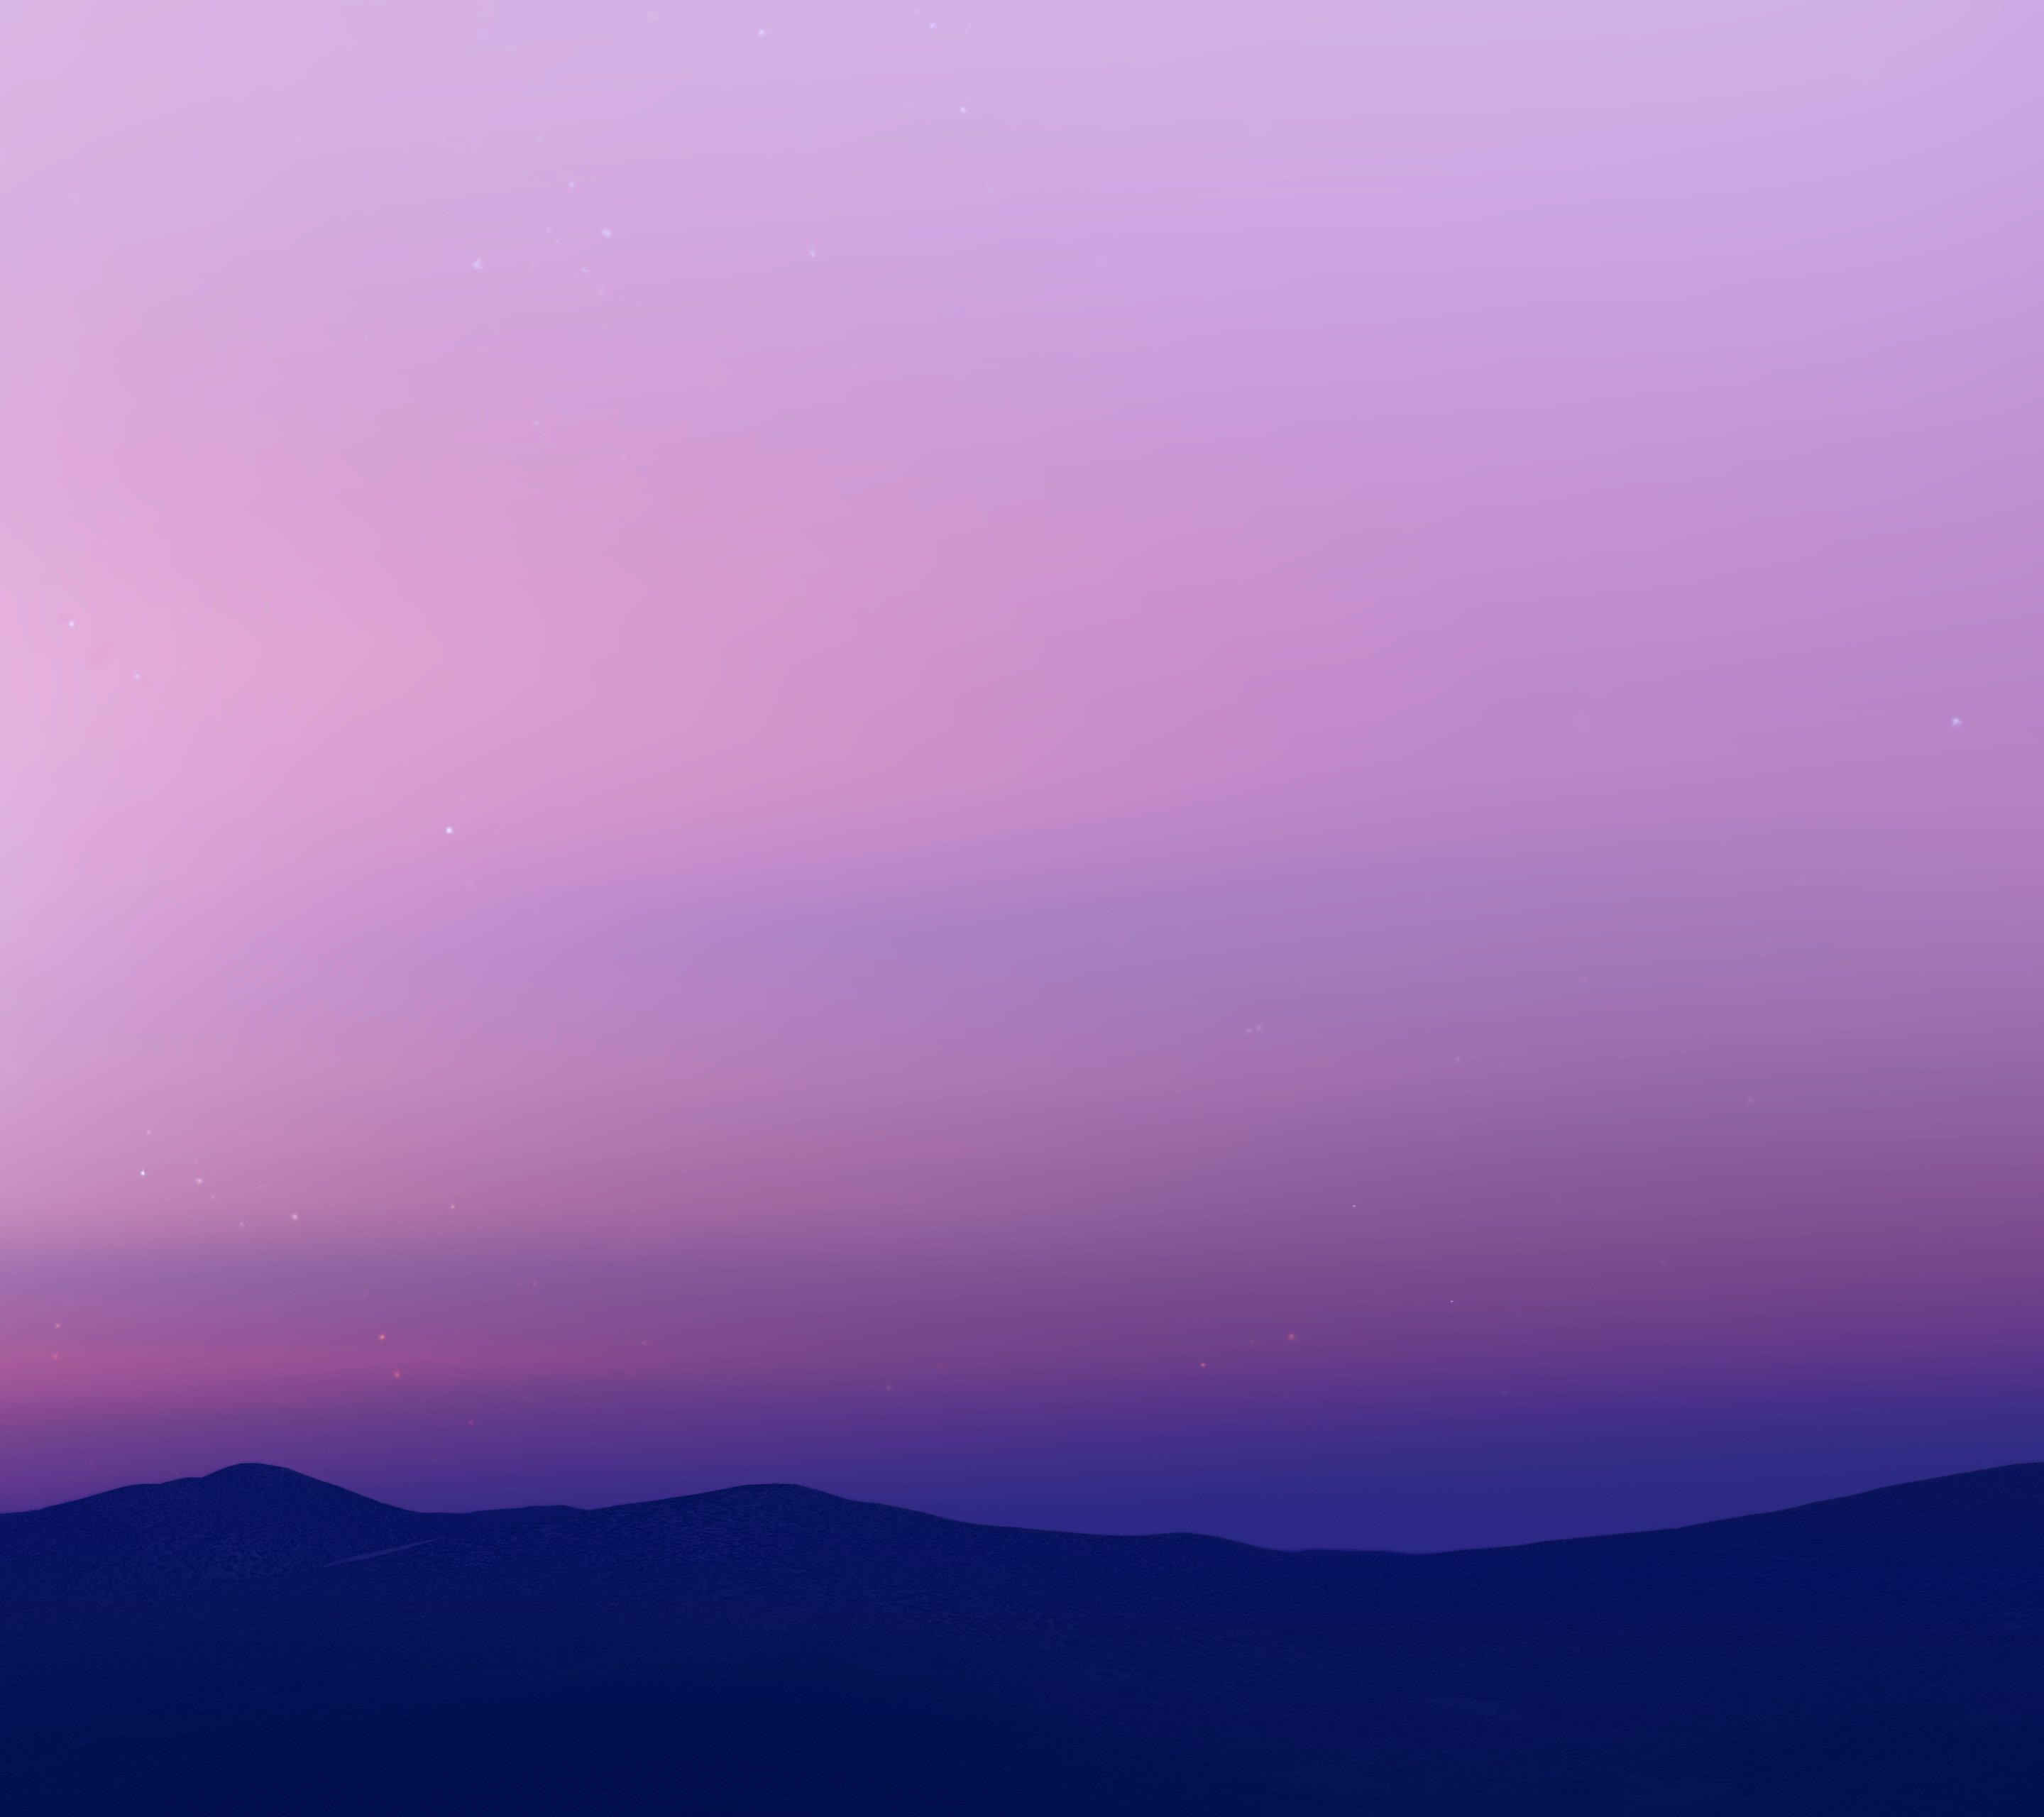 android n wallpaper bluepurple color